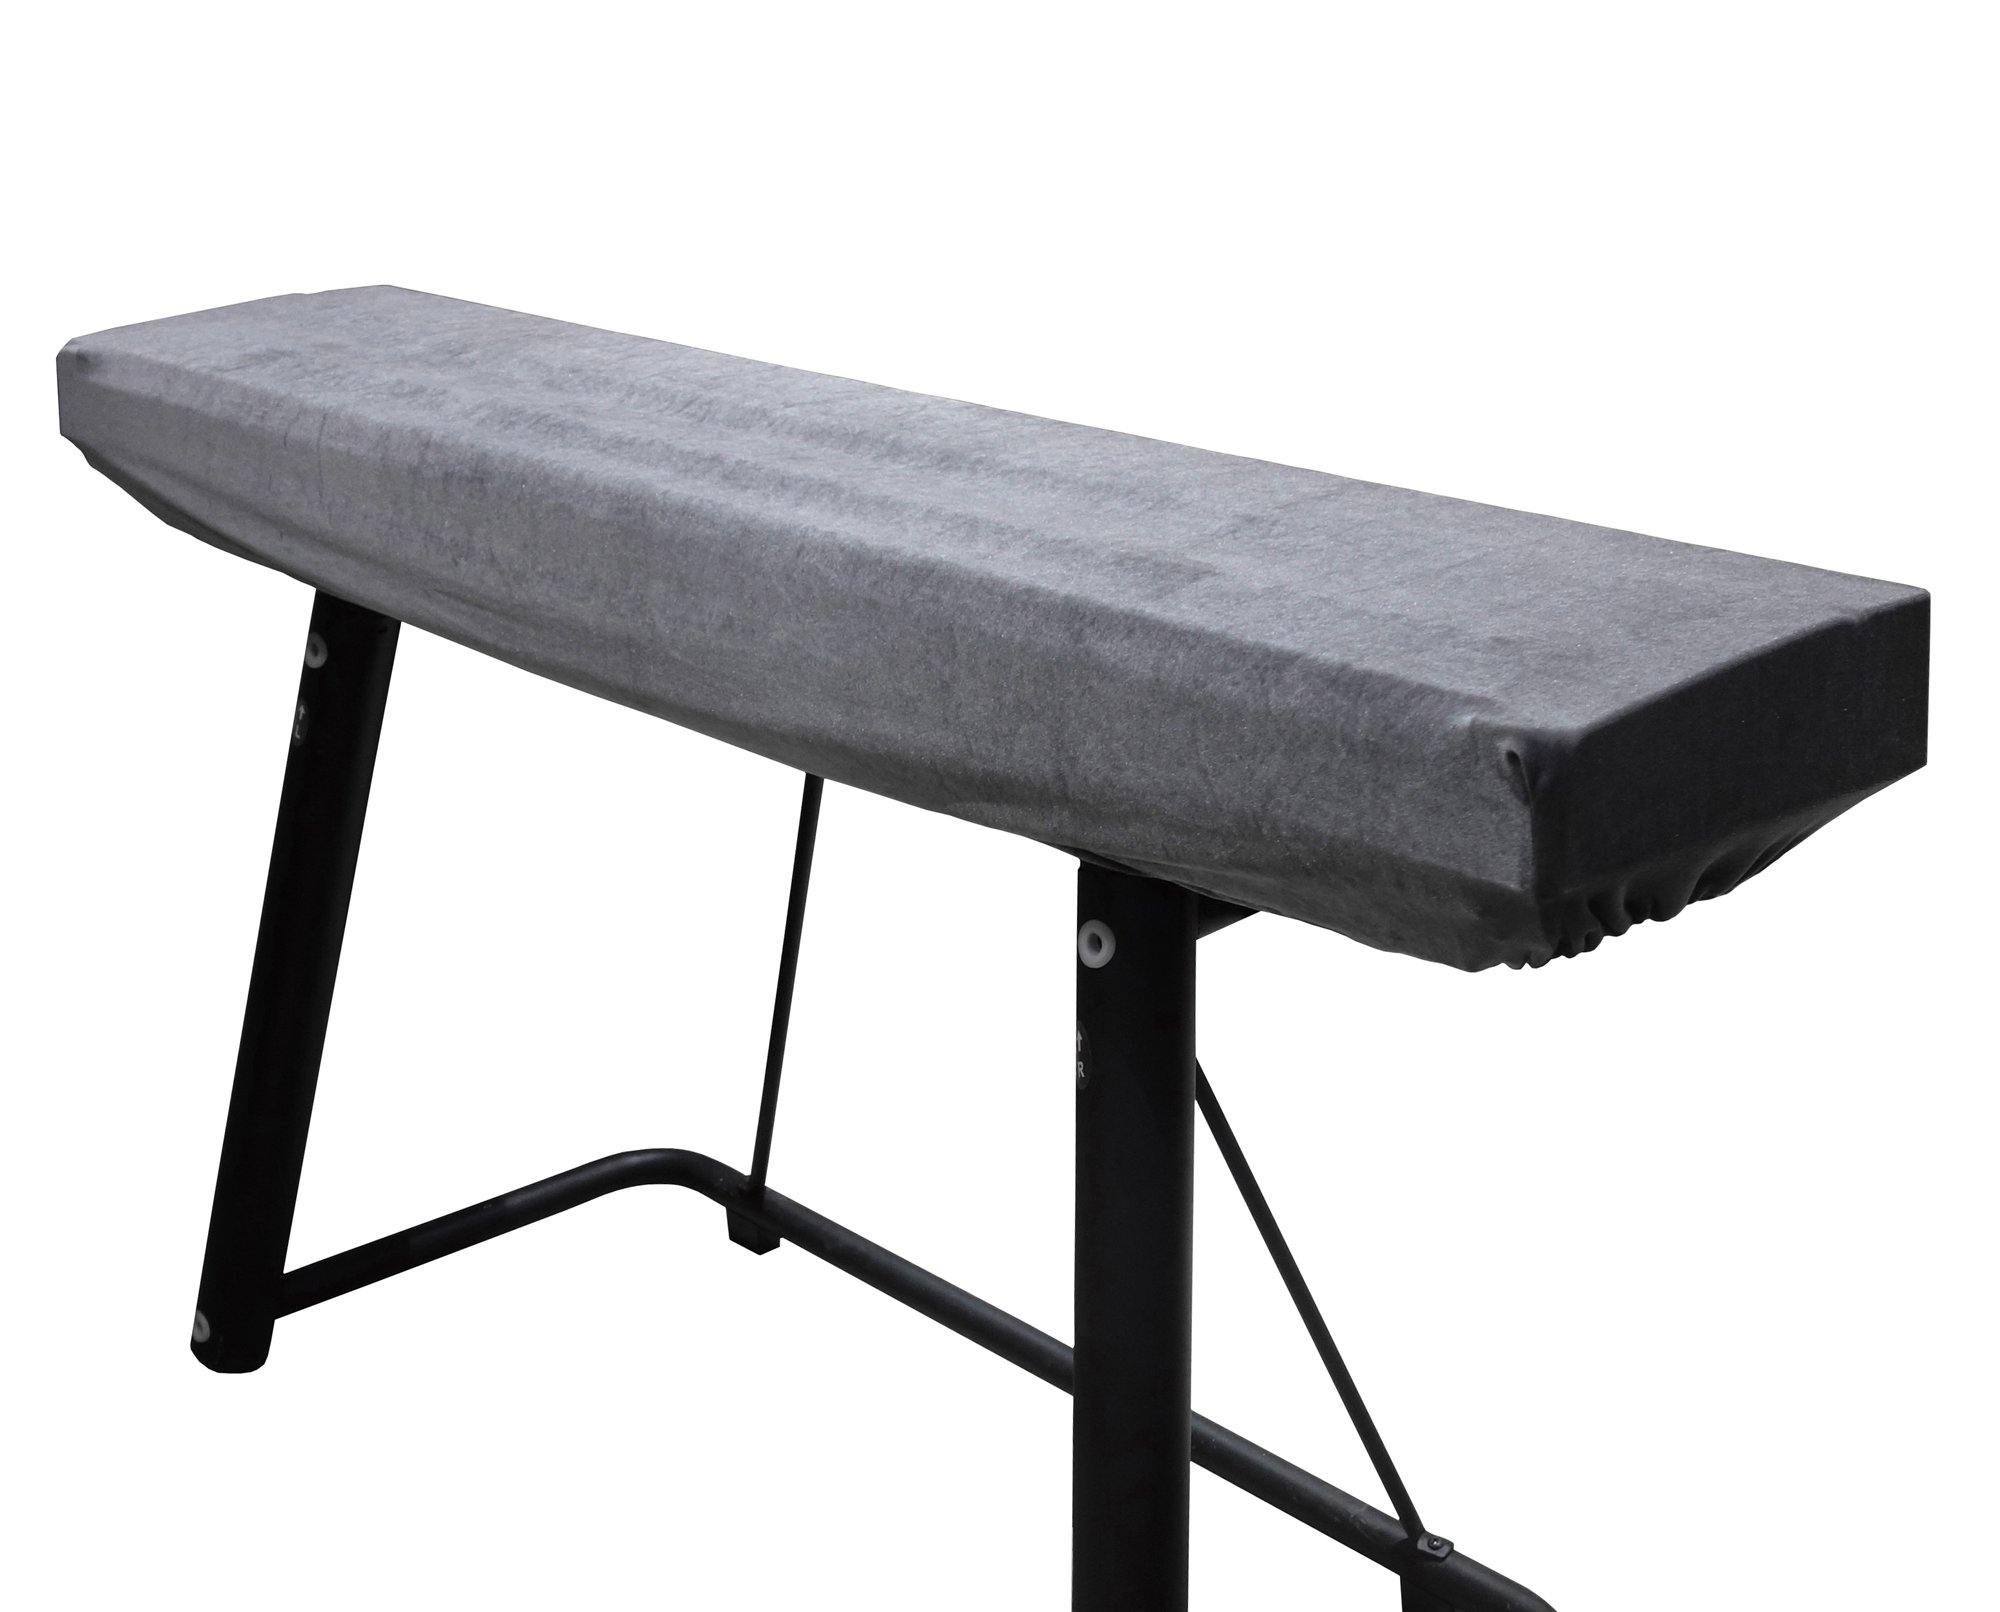 Piano Keyboard Cover Stretchy Plush Velvet Dust Cover for 88-Keys Digital Piano Keyboard (Gray)